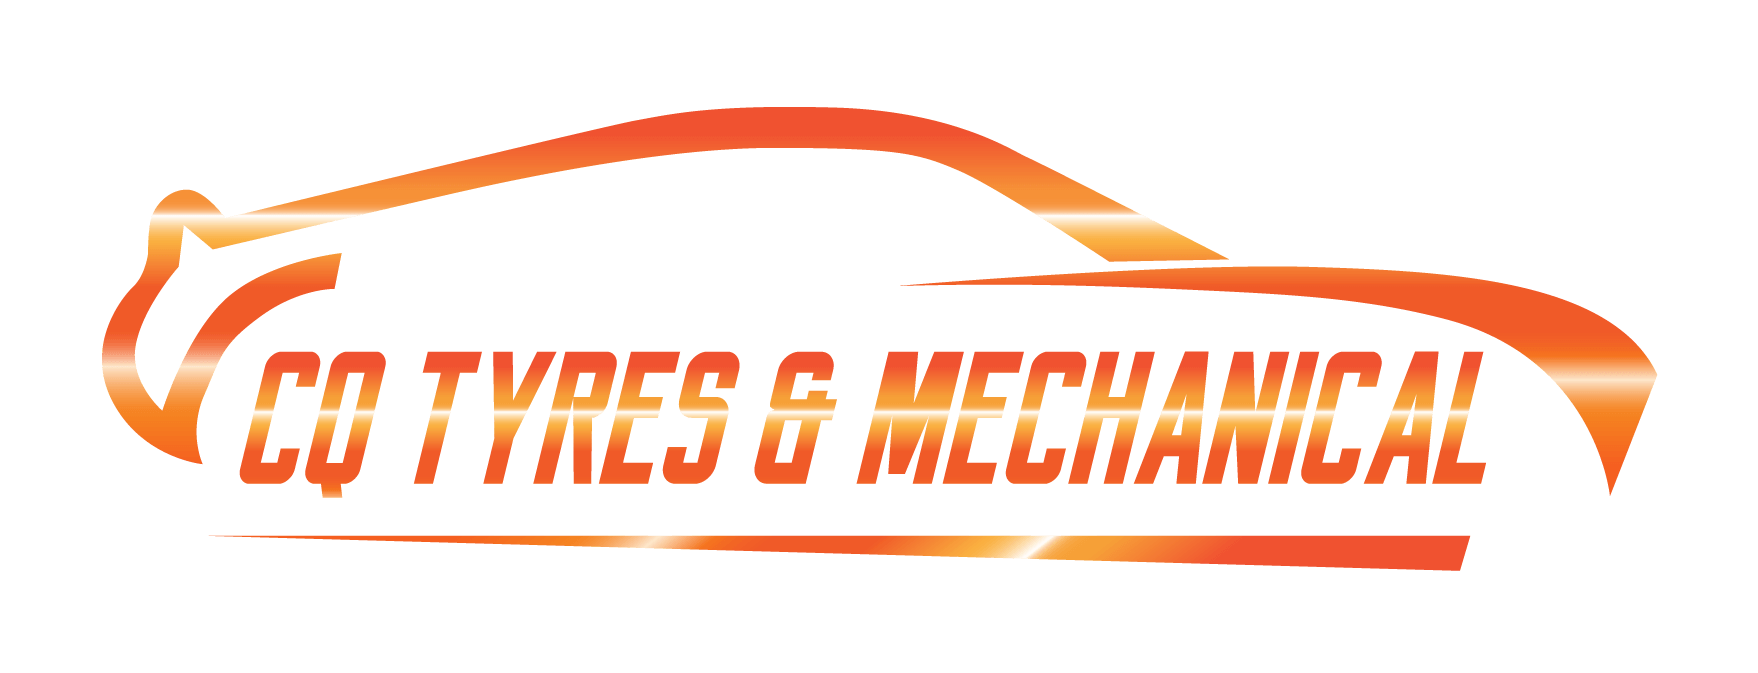 CQ Tyre & Mechanical logo